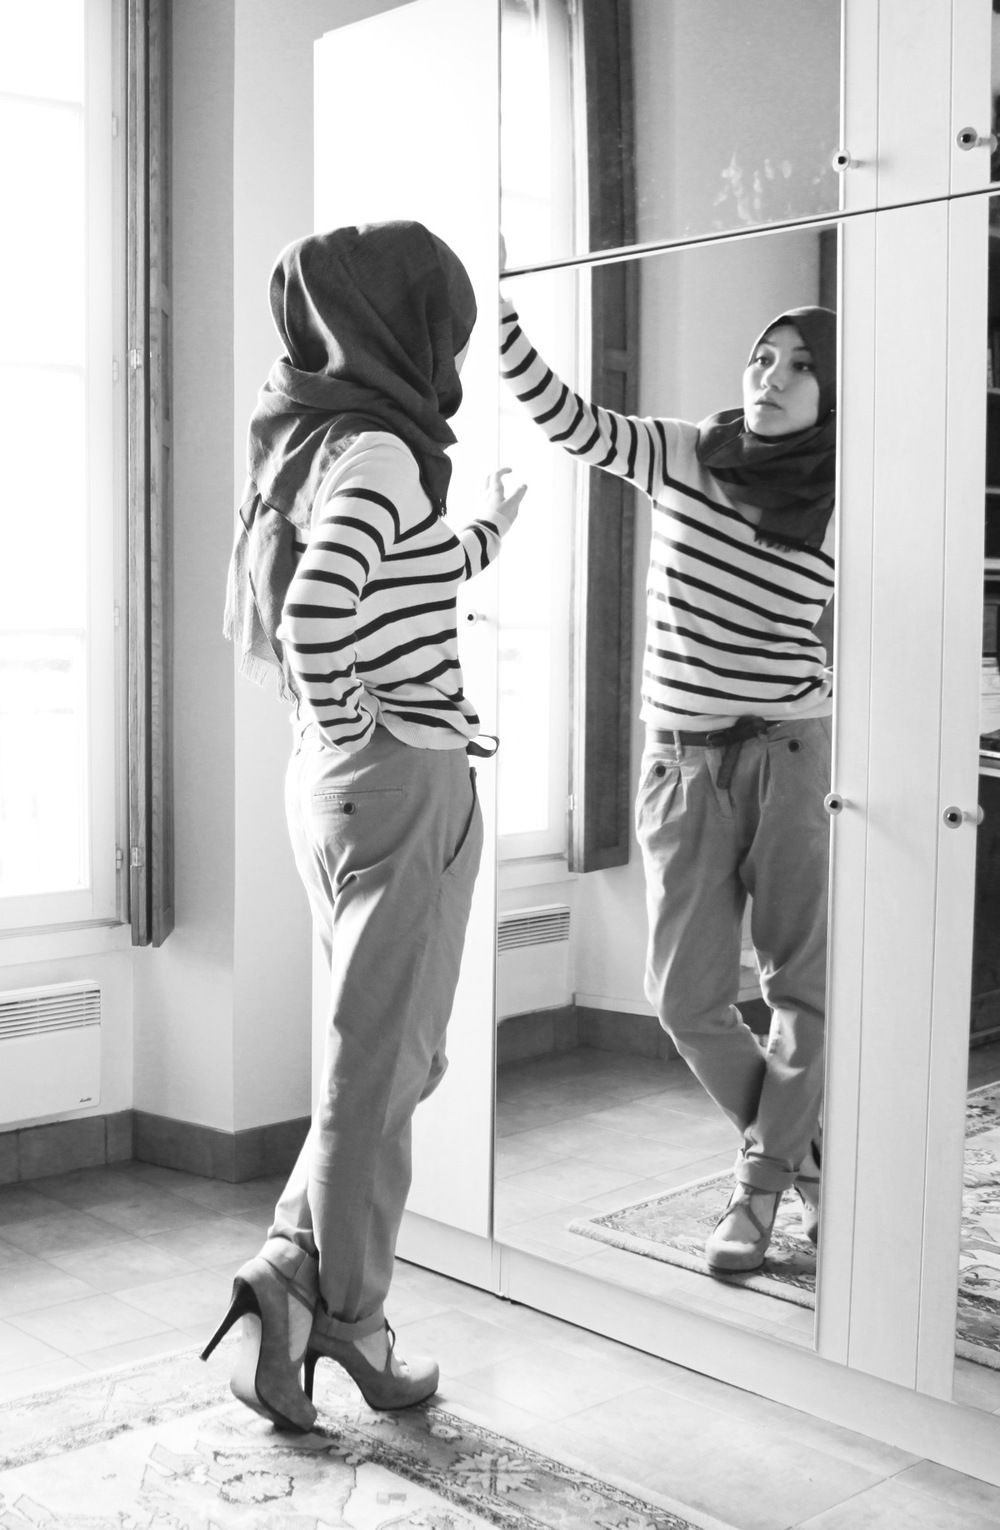 Stripes Hijab Fashion Hana Tajimajpg Hijab Outfit Pinterest